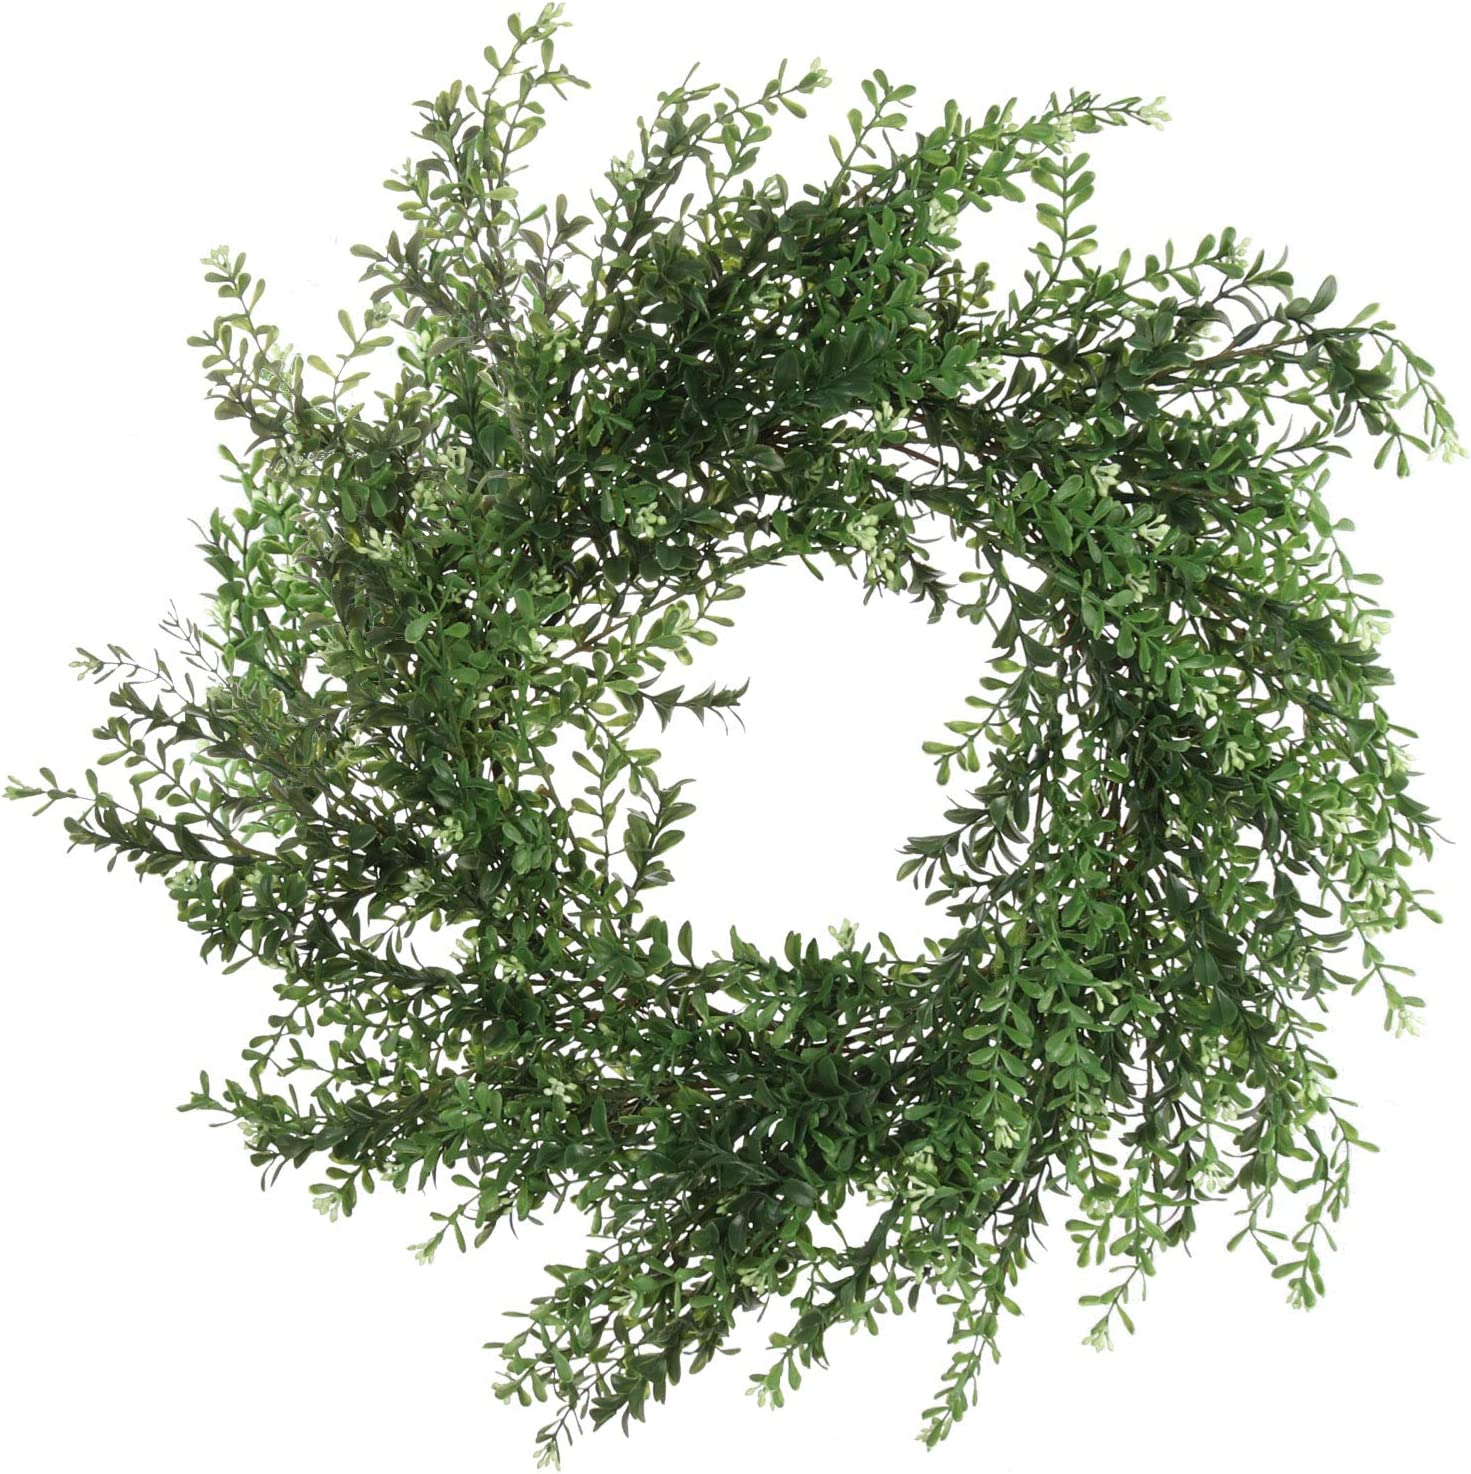 20 Inch Boxwood Wreath Indoor Round Safety and trust Outdoor Green Bambo ! Super beauty product restock quality top!